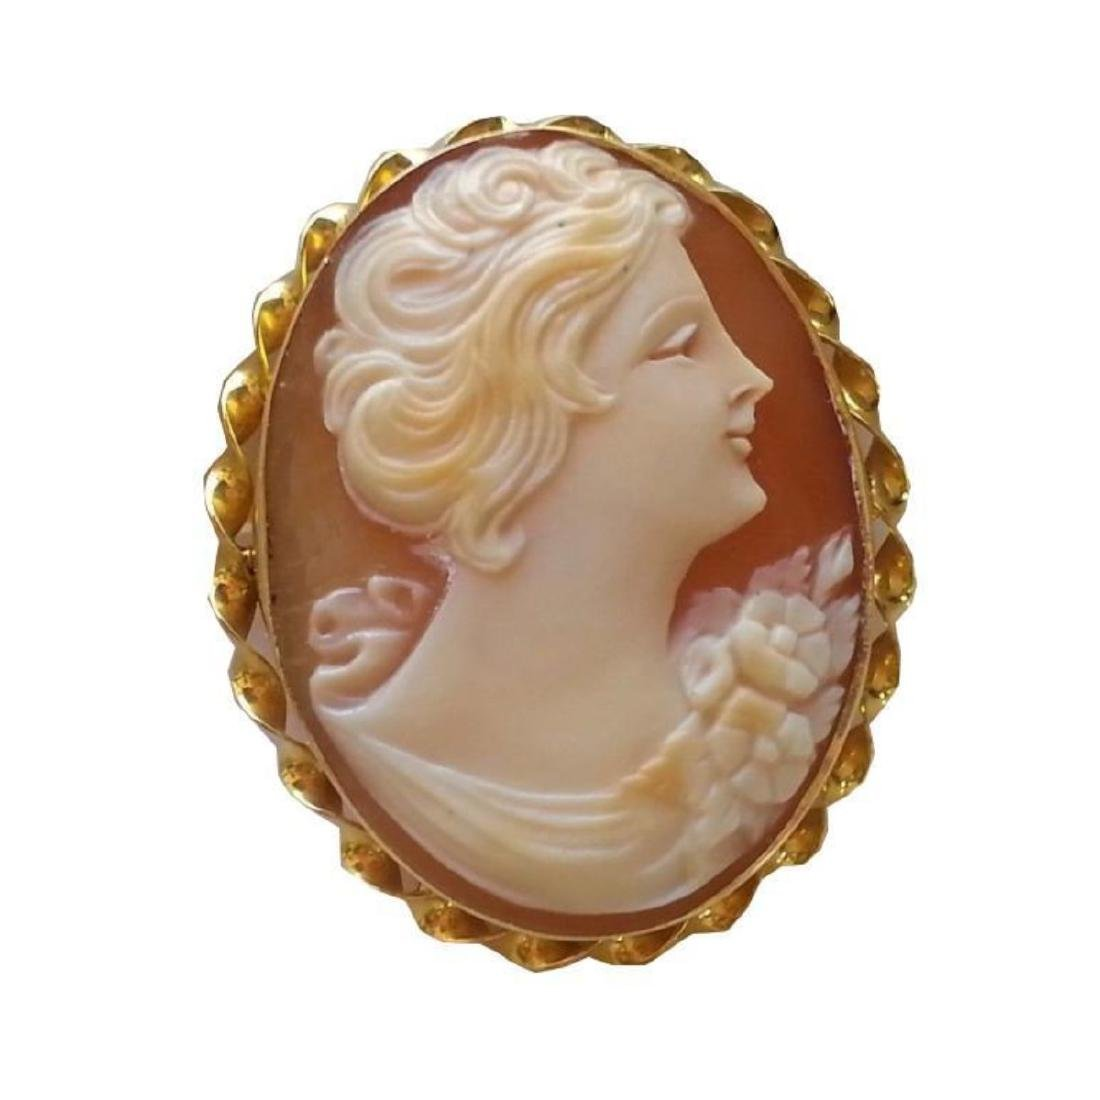 Vintage 10kt Yellow Gold Cameo Brooch